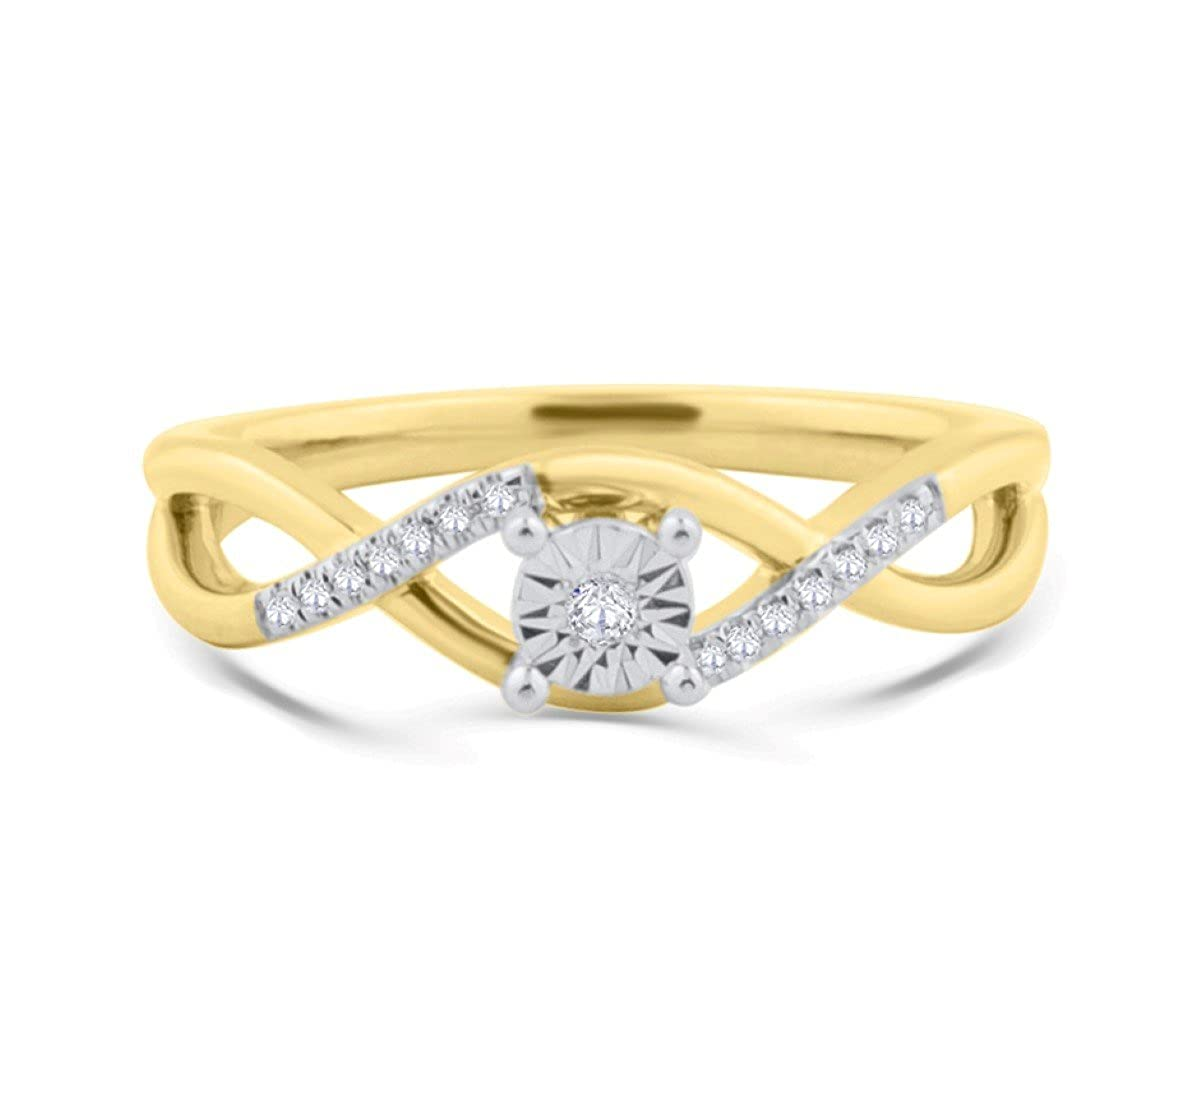 2f69b2edeb9c0 Midwest Jewellery 10K Gold Diamond Promise Ring Engagement Infinity Style  Yellow Gold or Rose Gold